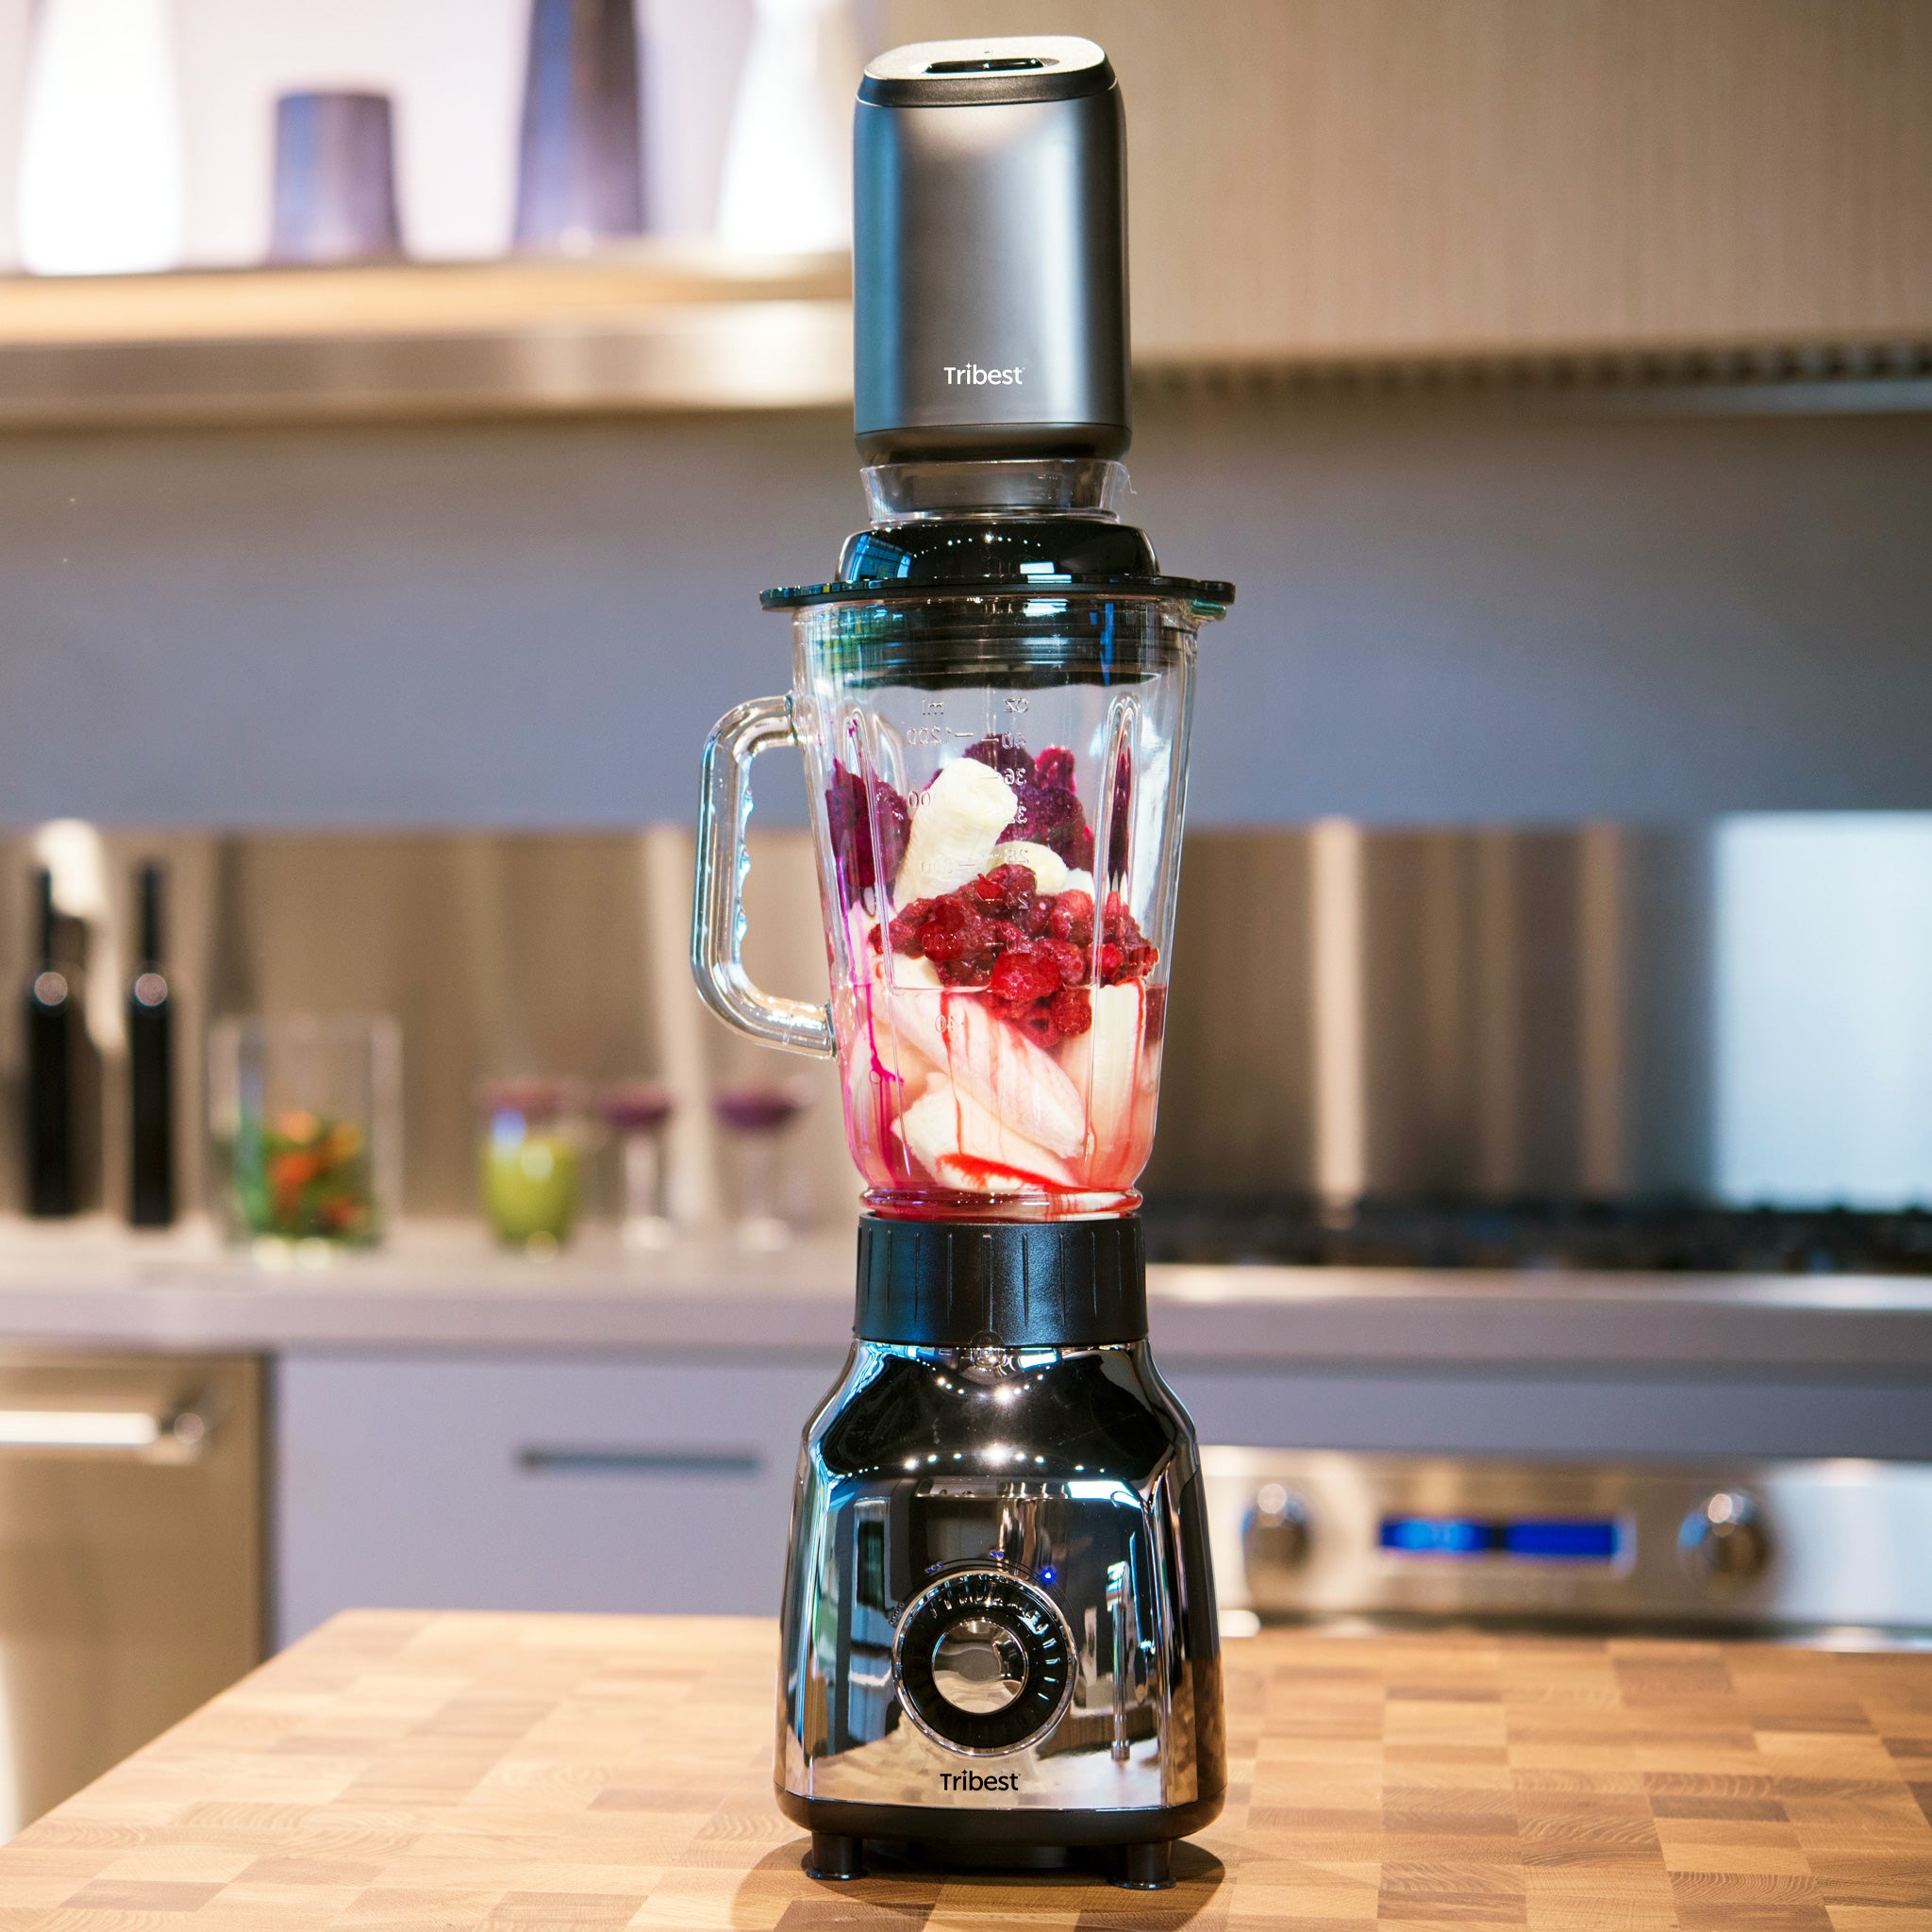 Glass Personal Blender with Vacuum PBG-5001-A -Strawberry and Banana Blend - Tribest